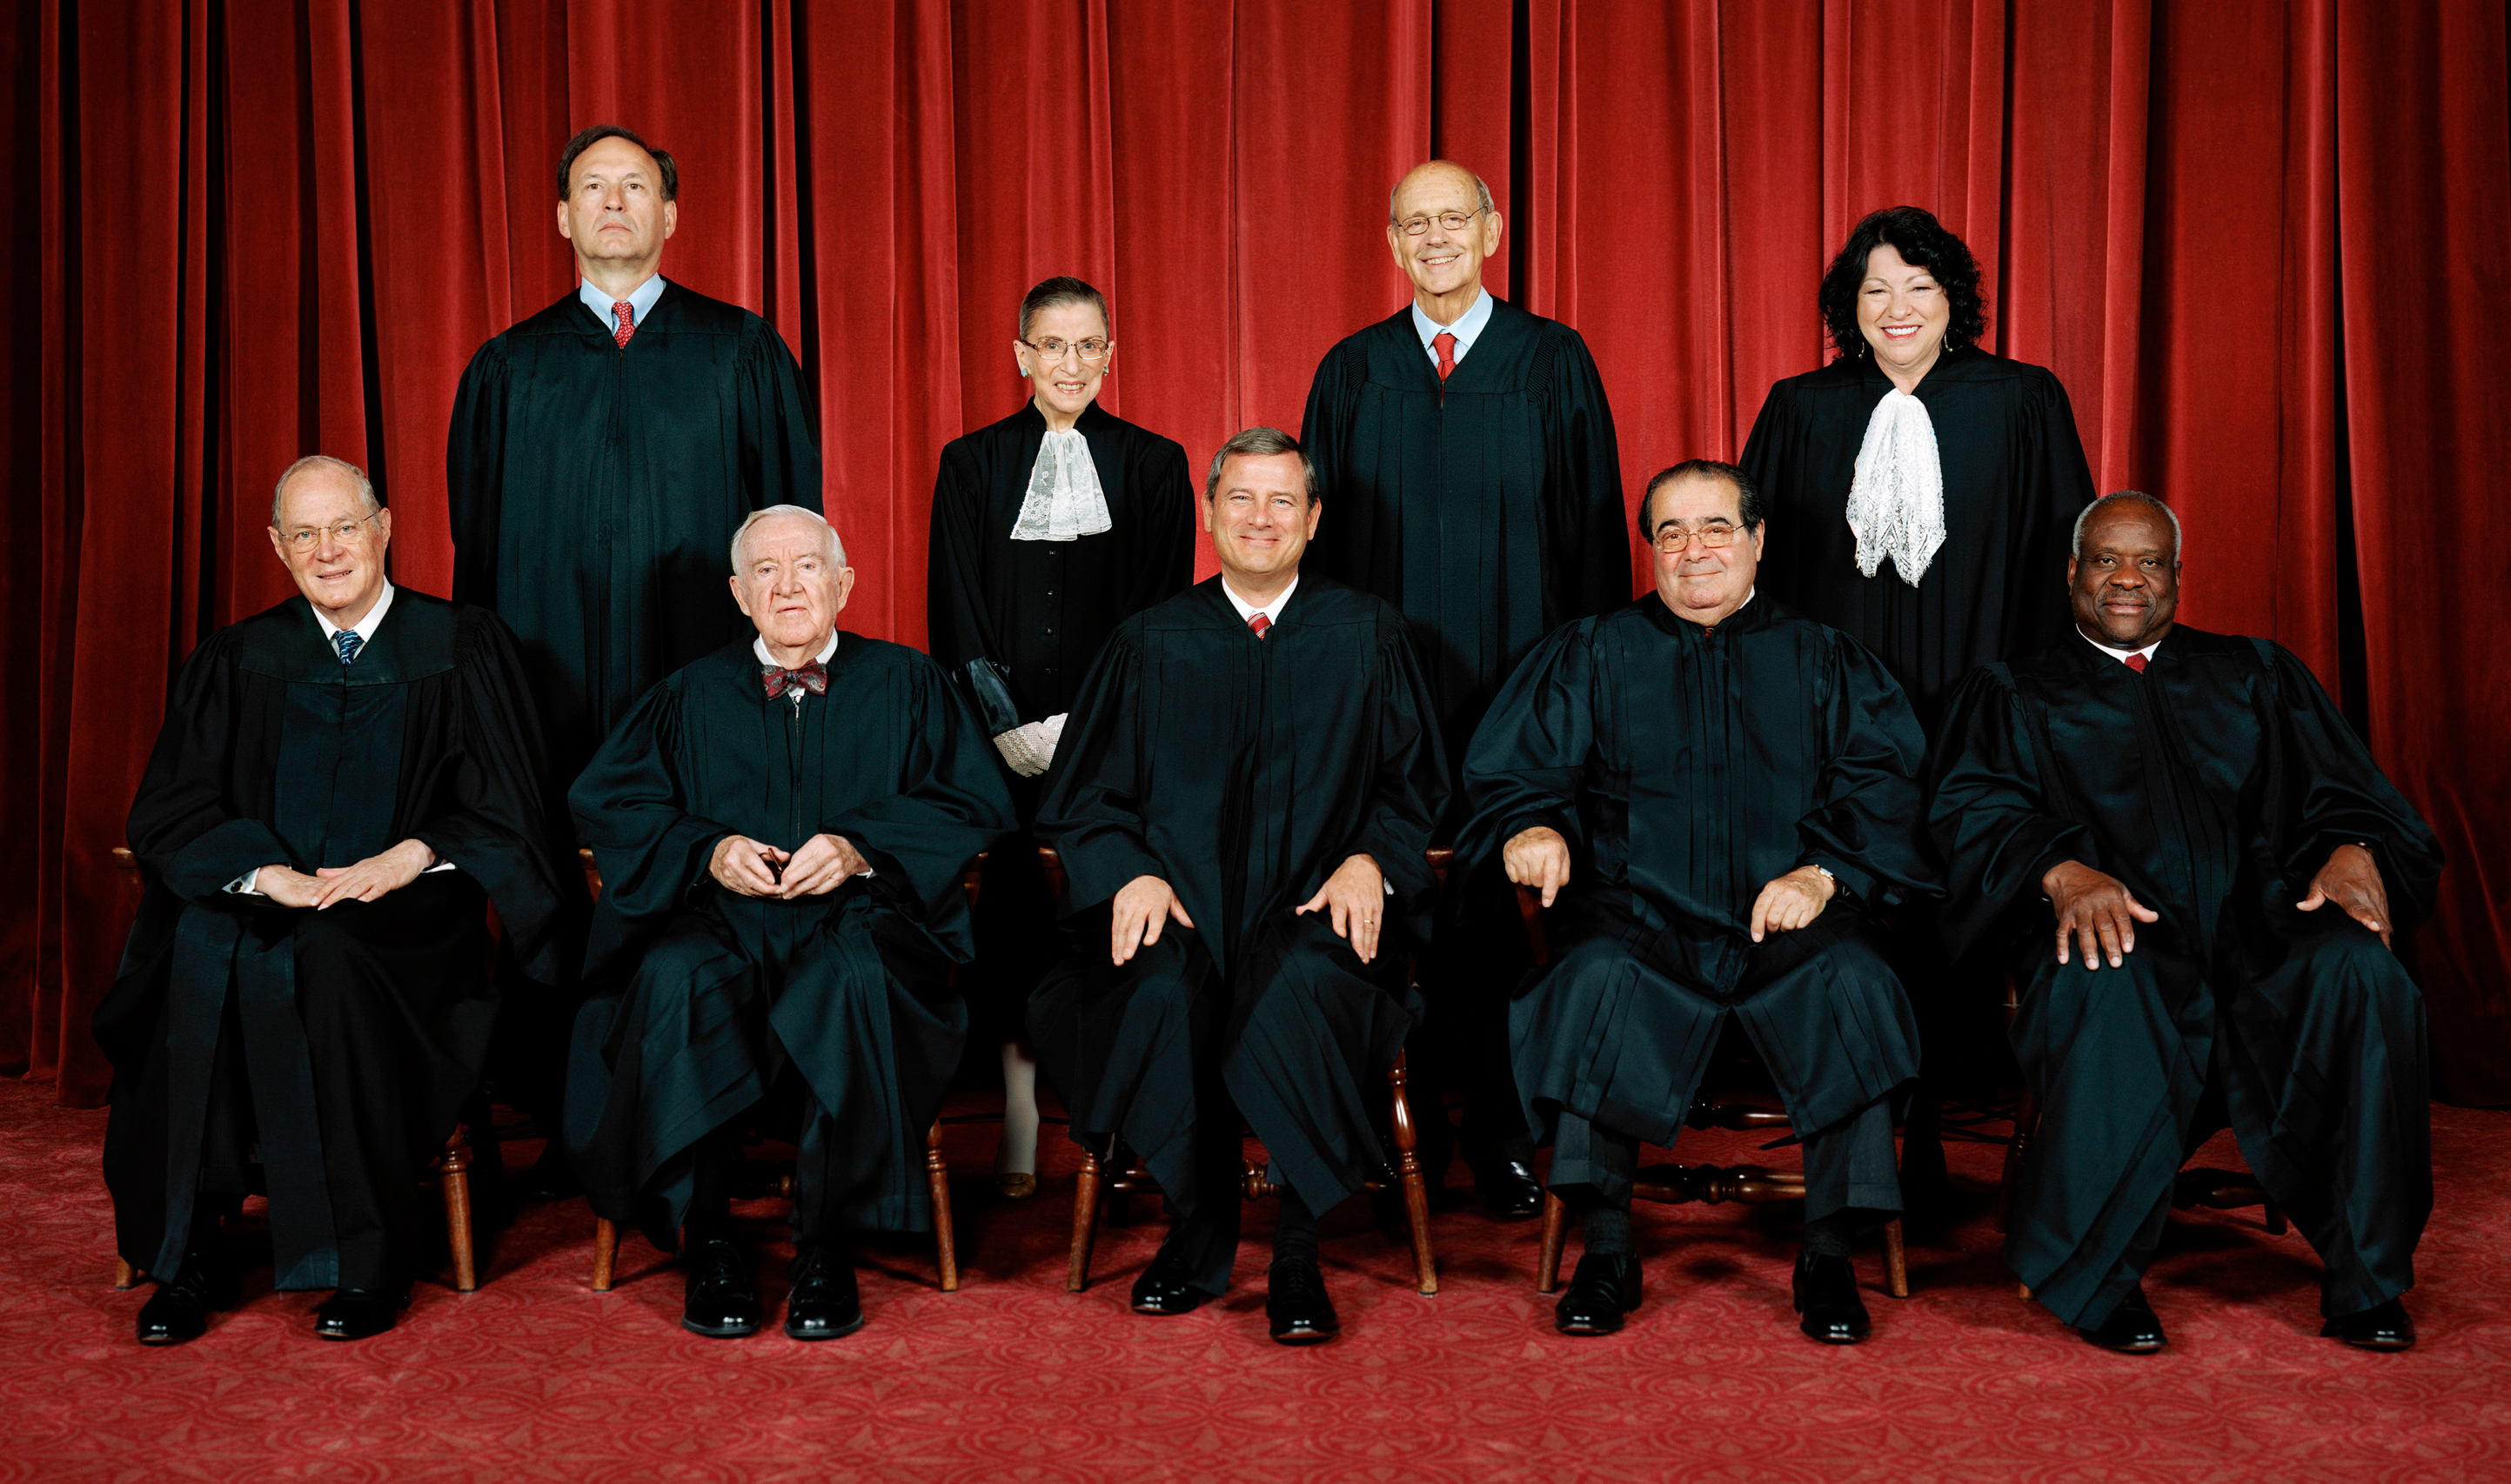 http://upload.wikimedia.org/wikipedia/commons/d/db/Supreme_Court_US_2009.jpg